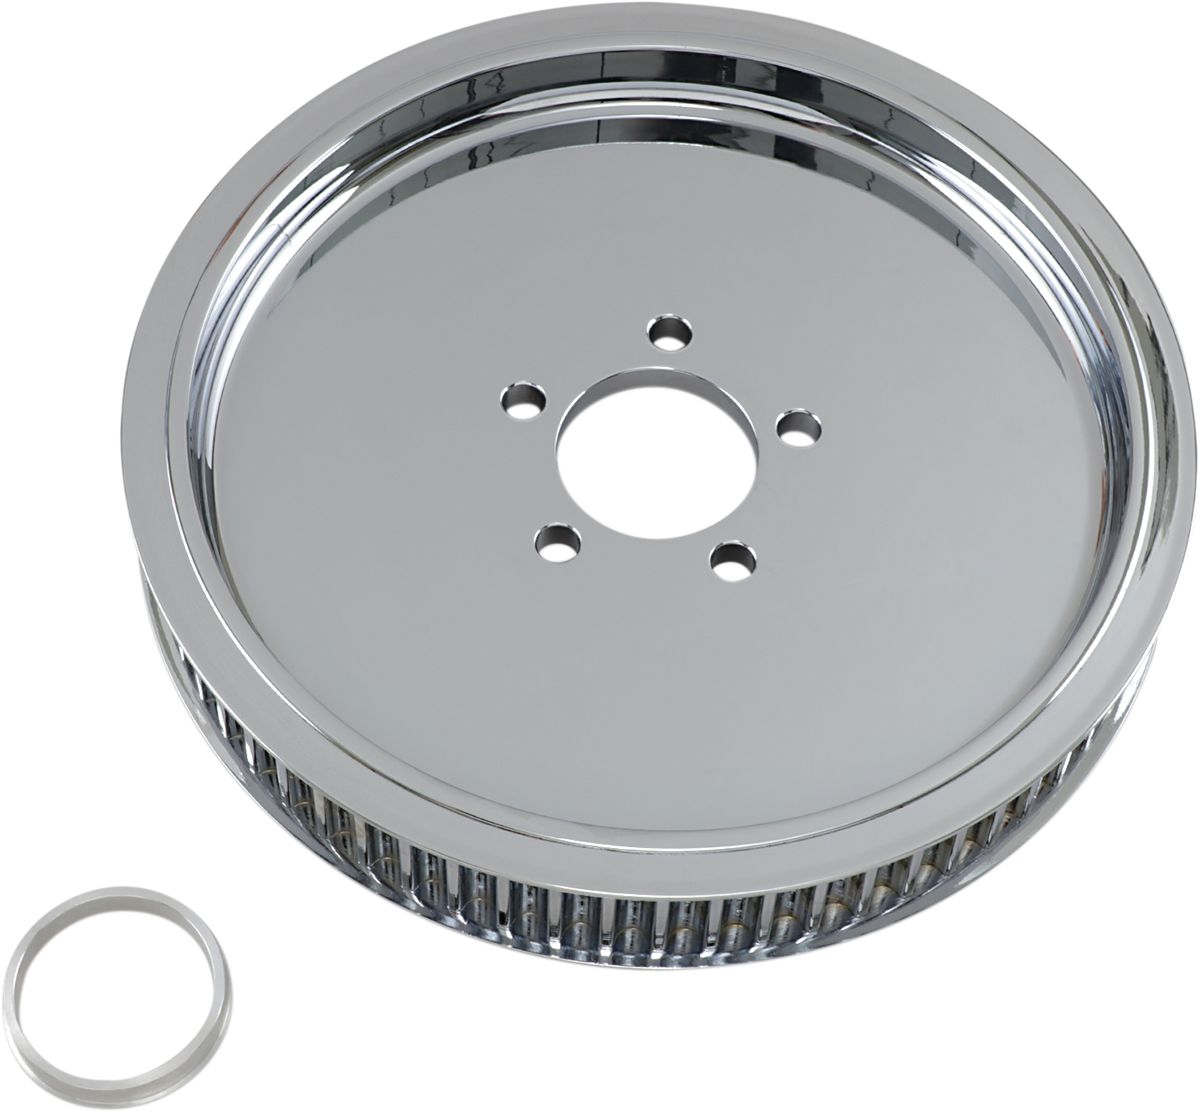 REAR BELT PULLEY SMOOTH CHROME 65T